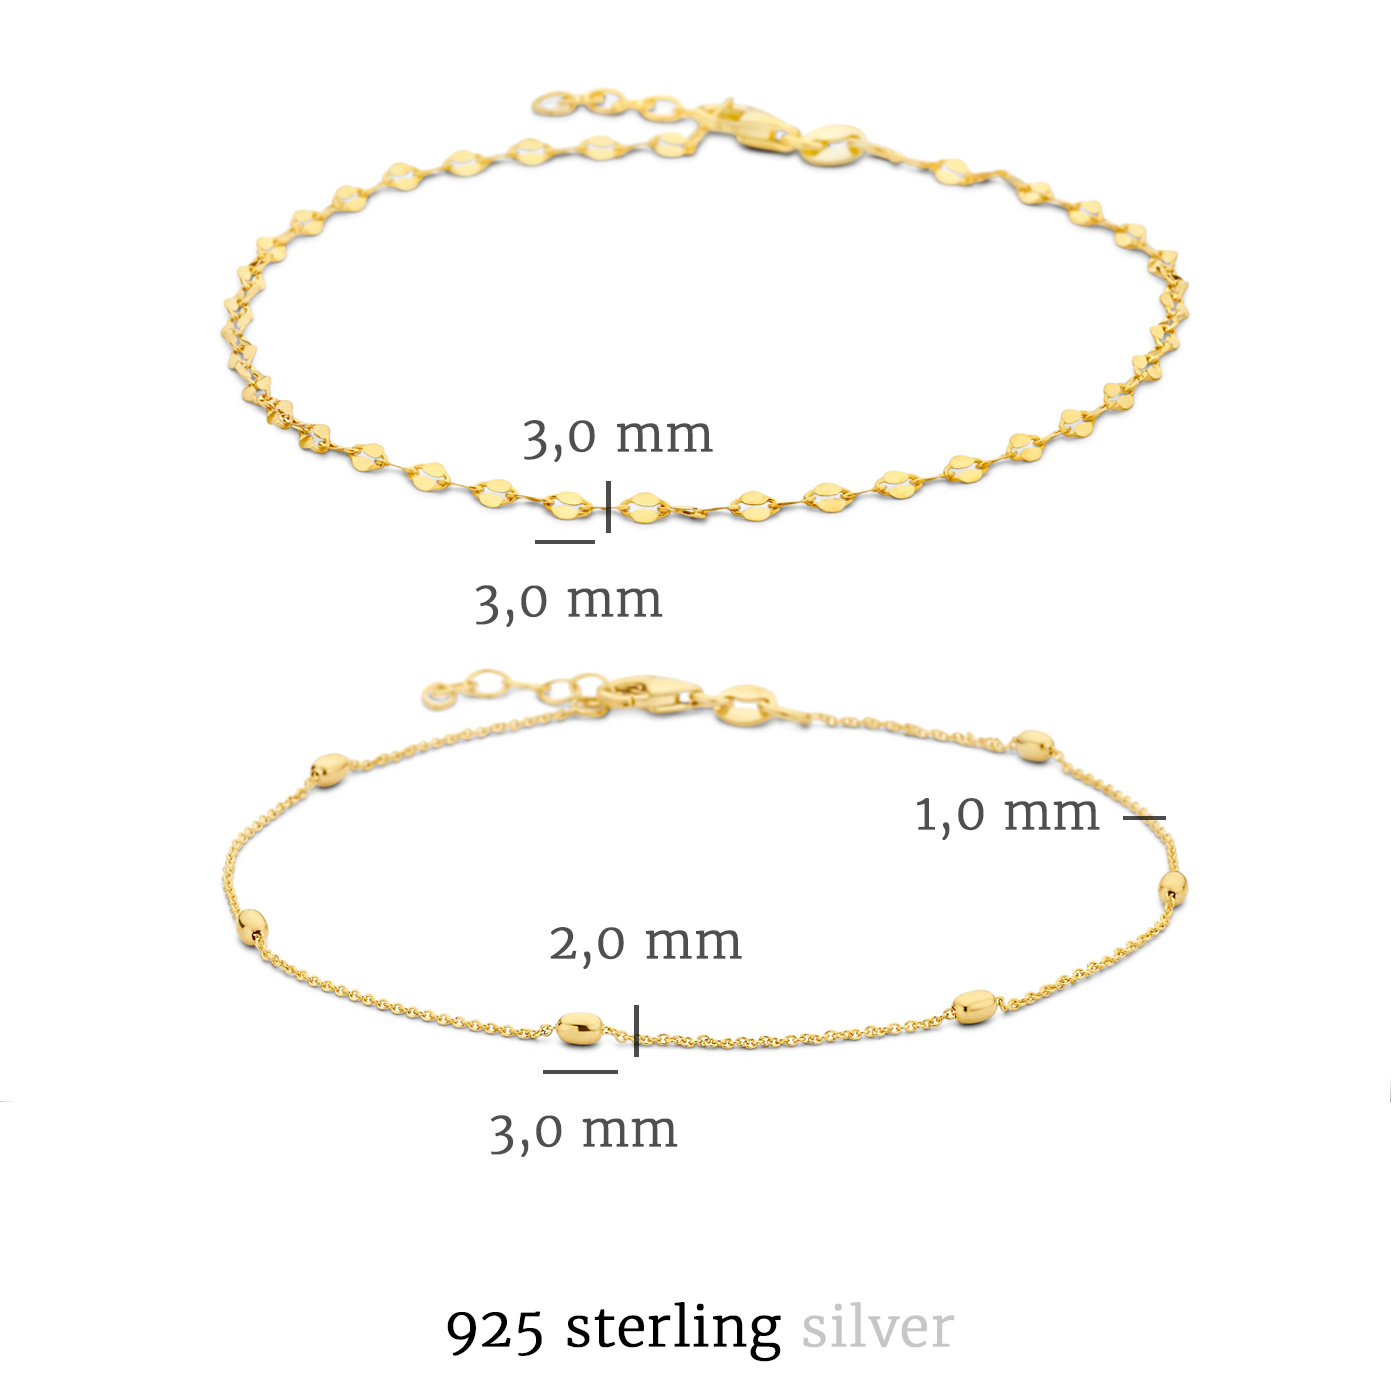 Selected Jewels Selected Gifts 925 Sterling Silber goldfarbenes Satz Fußkettchen